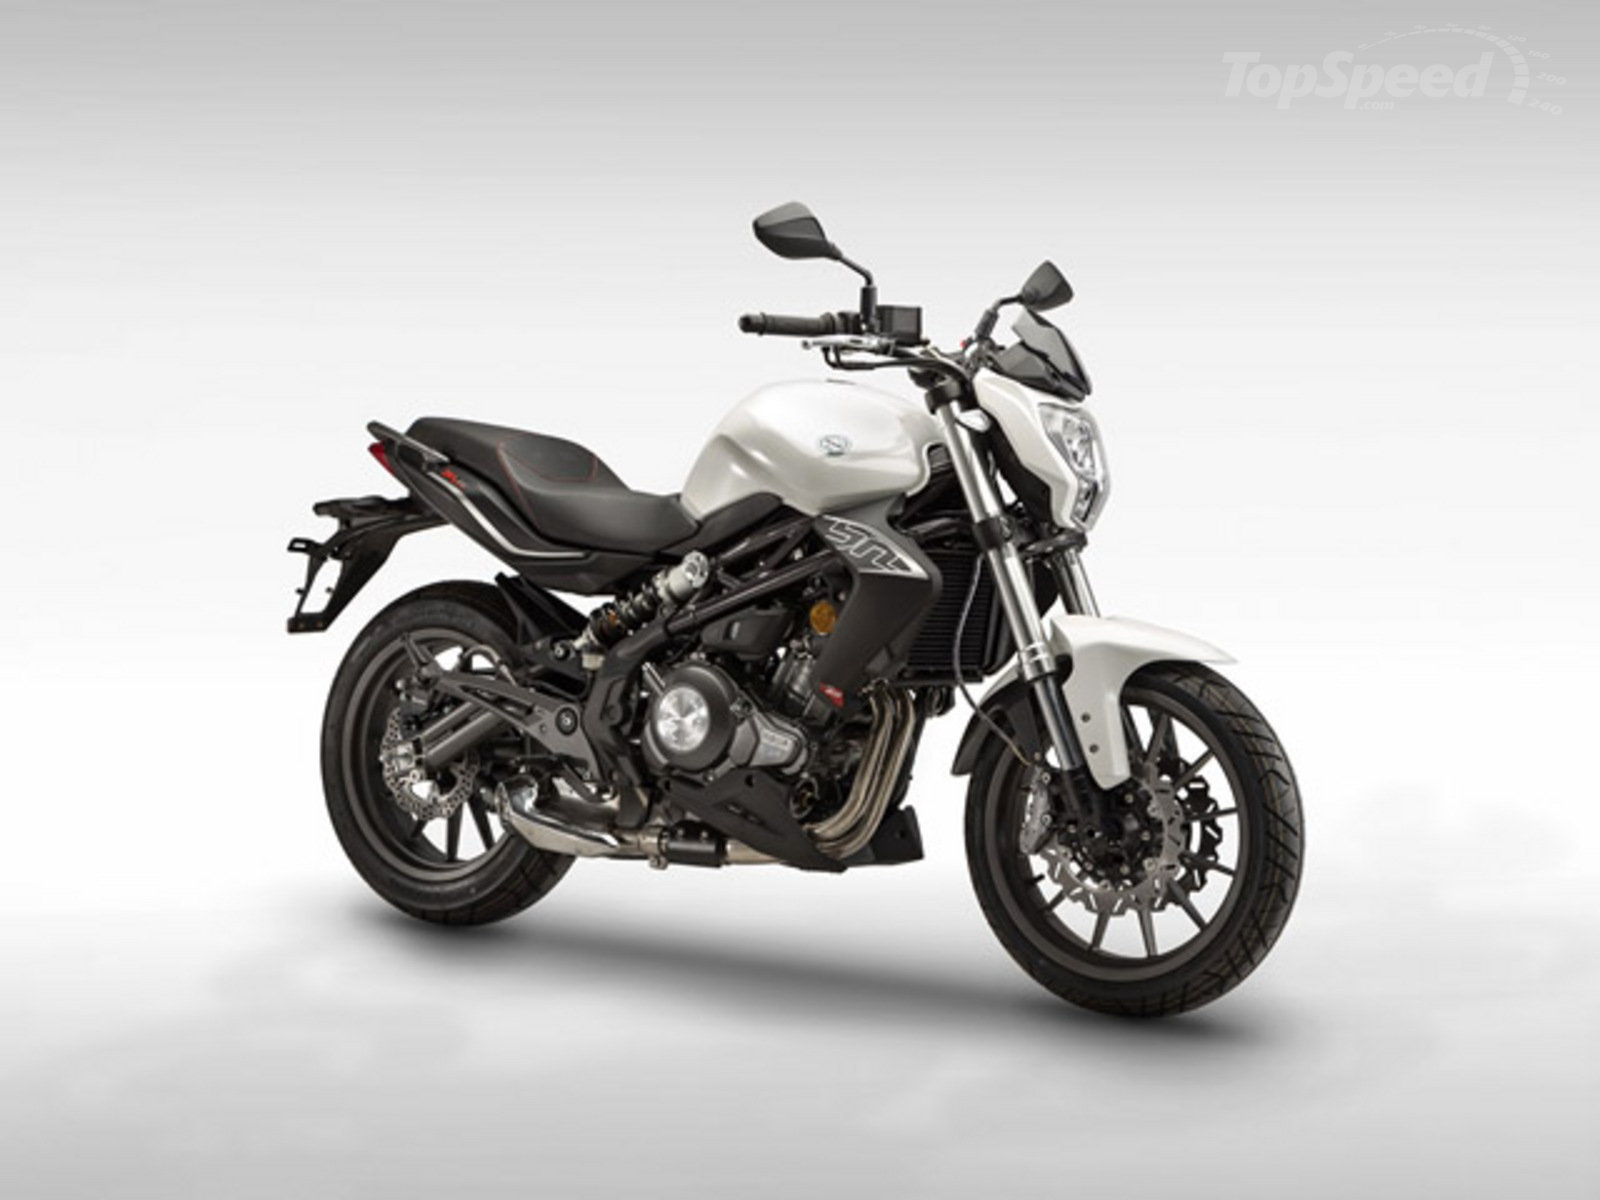 Benelli BN 302 S - Fastmotor